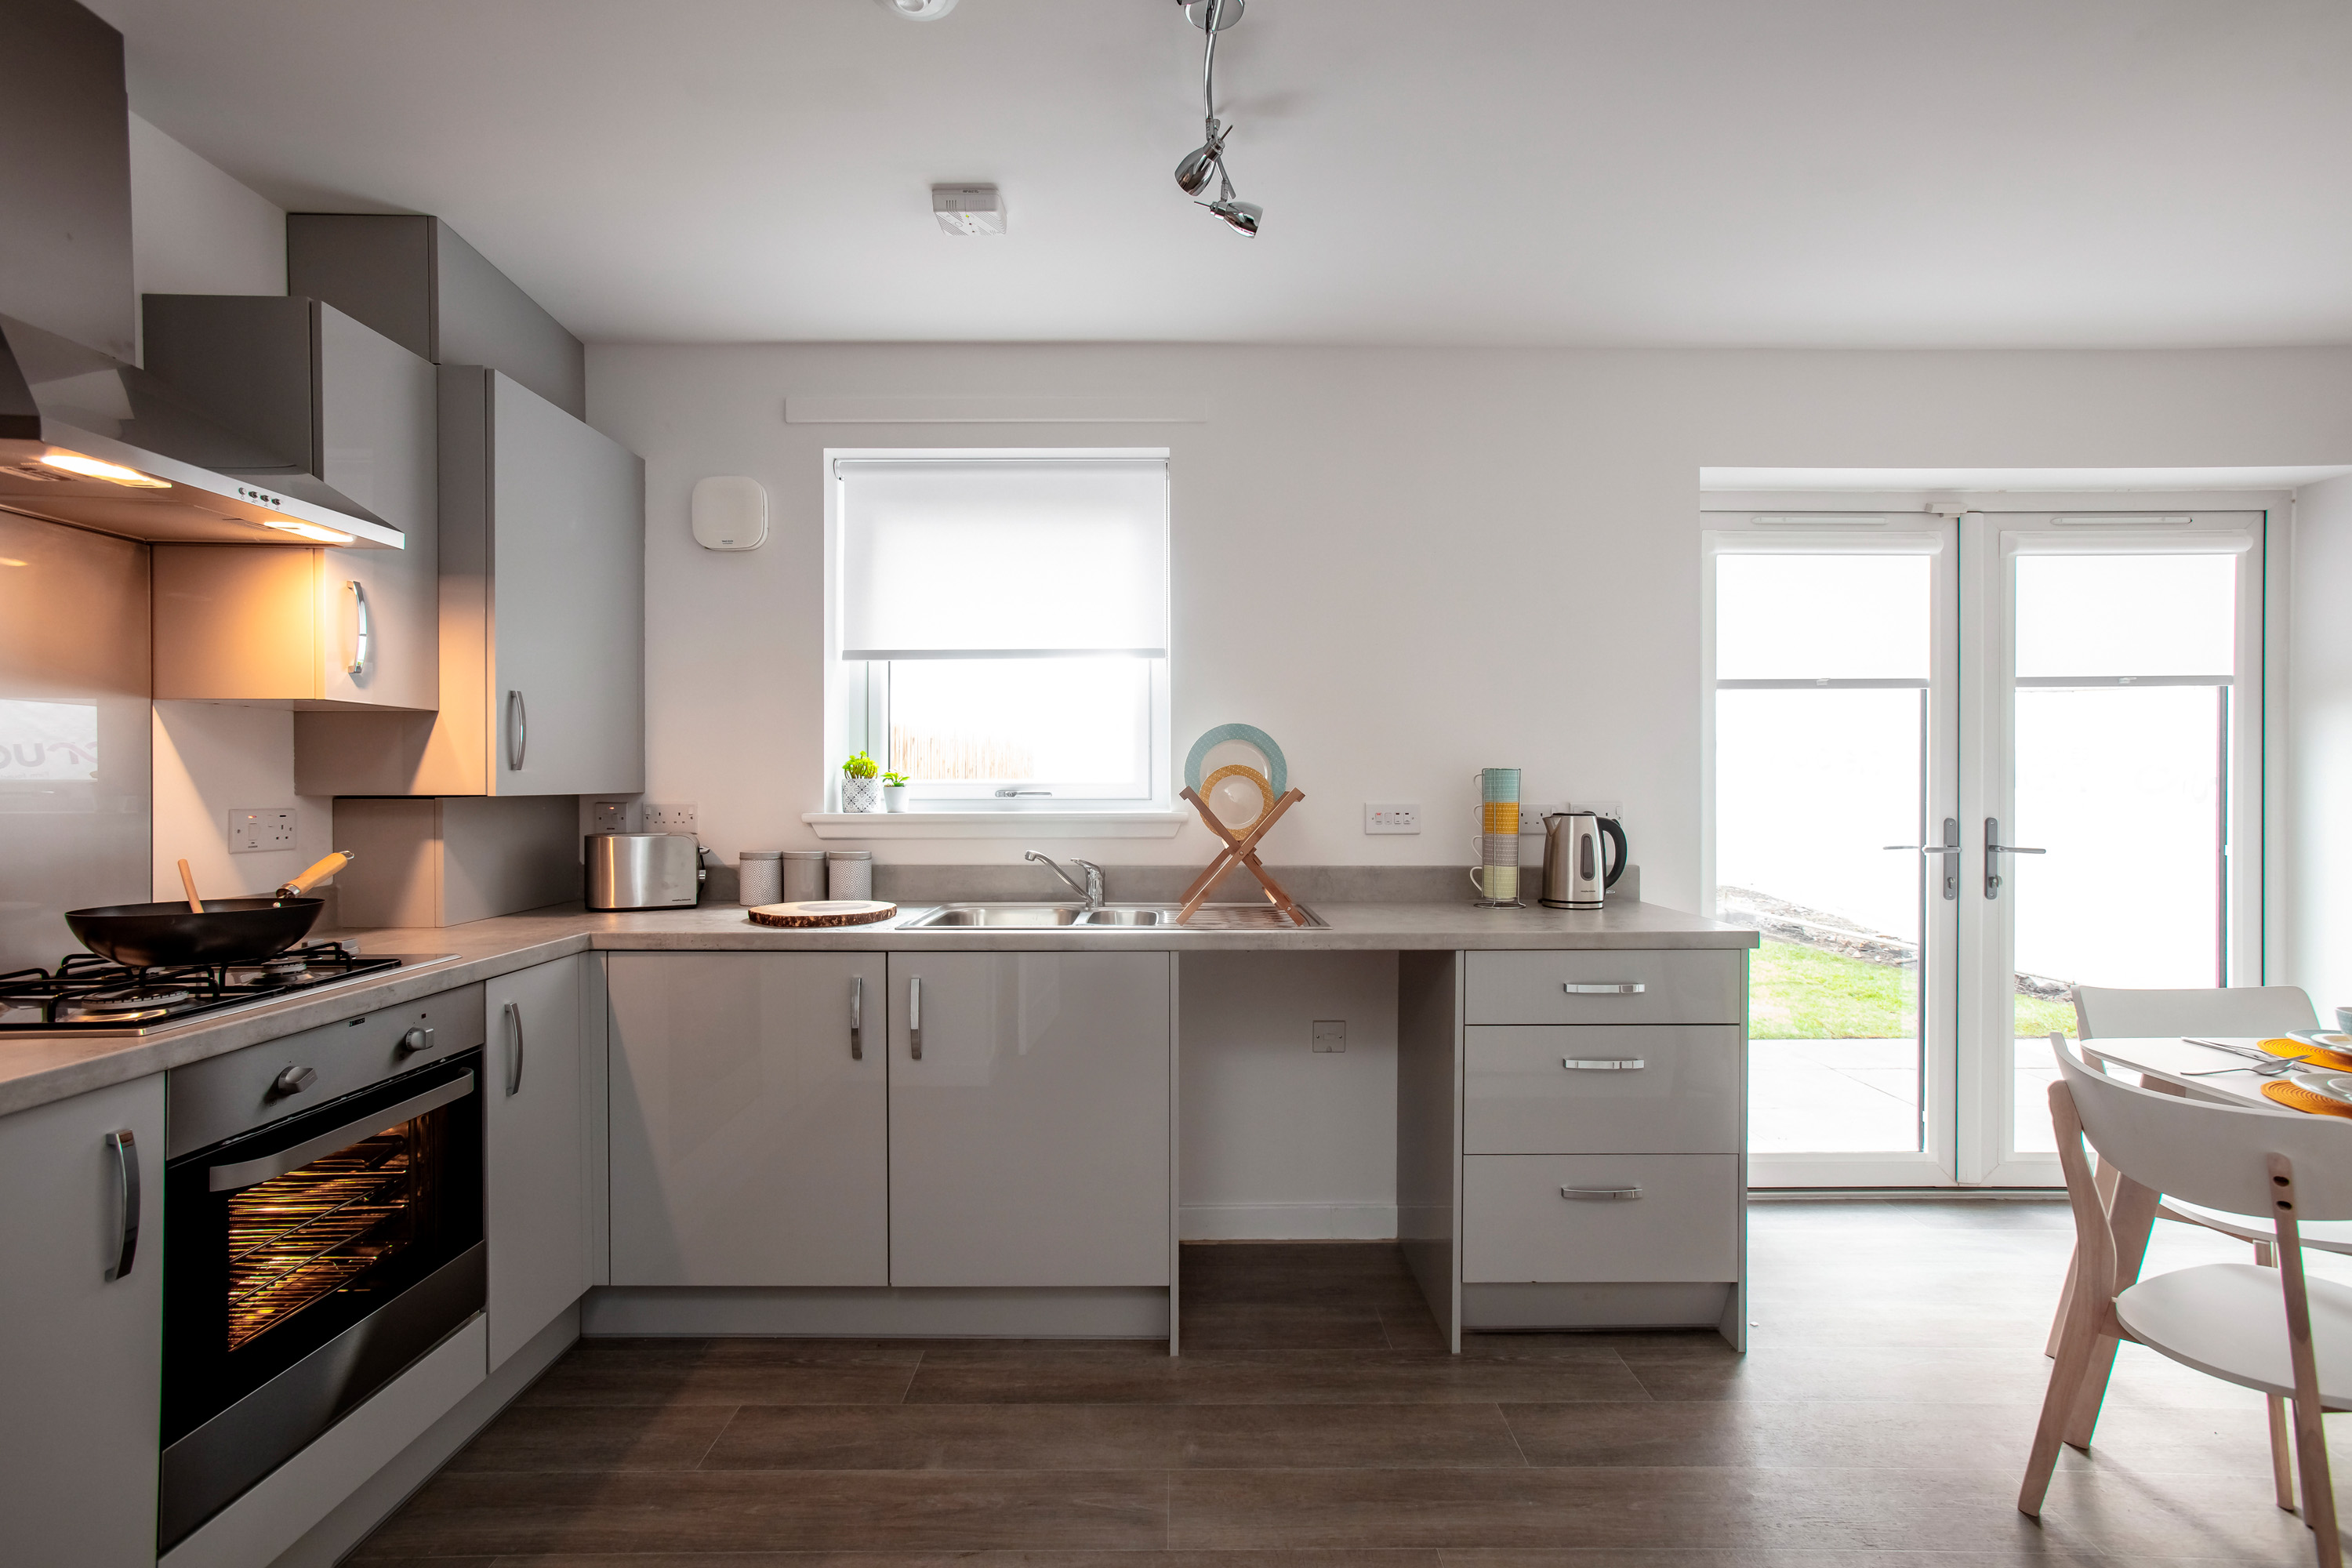 Super Keeping Your New Home Clutter Free Cruden Homes Download Free Architecture Designs Xaembritishbridgeorg